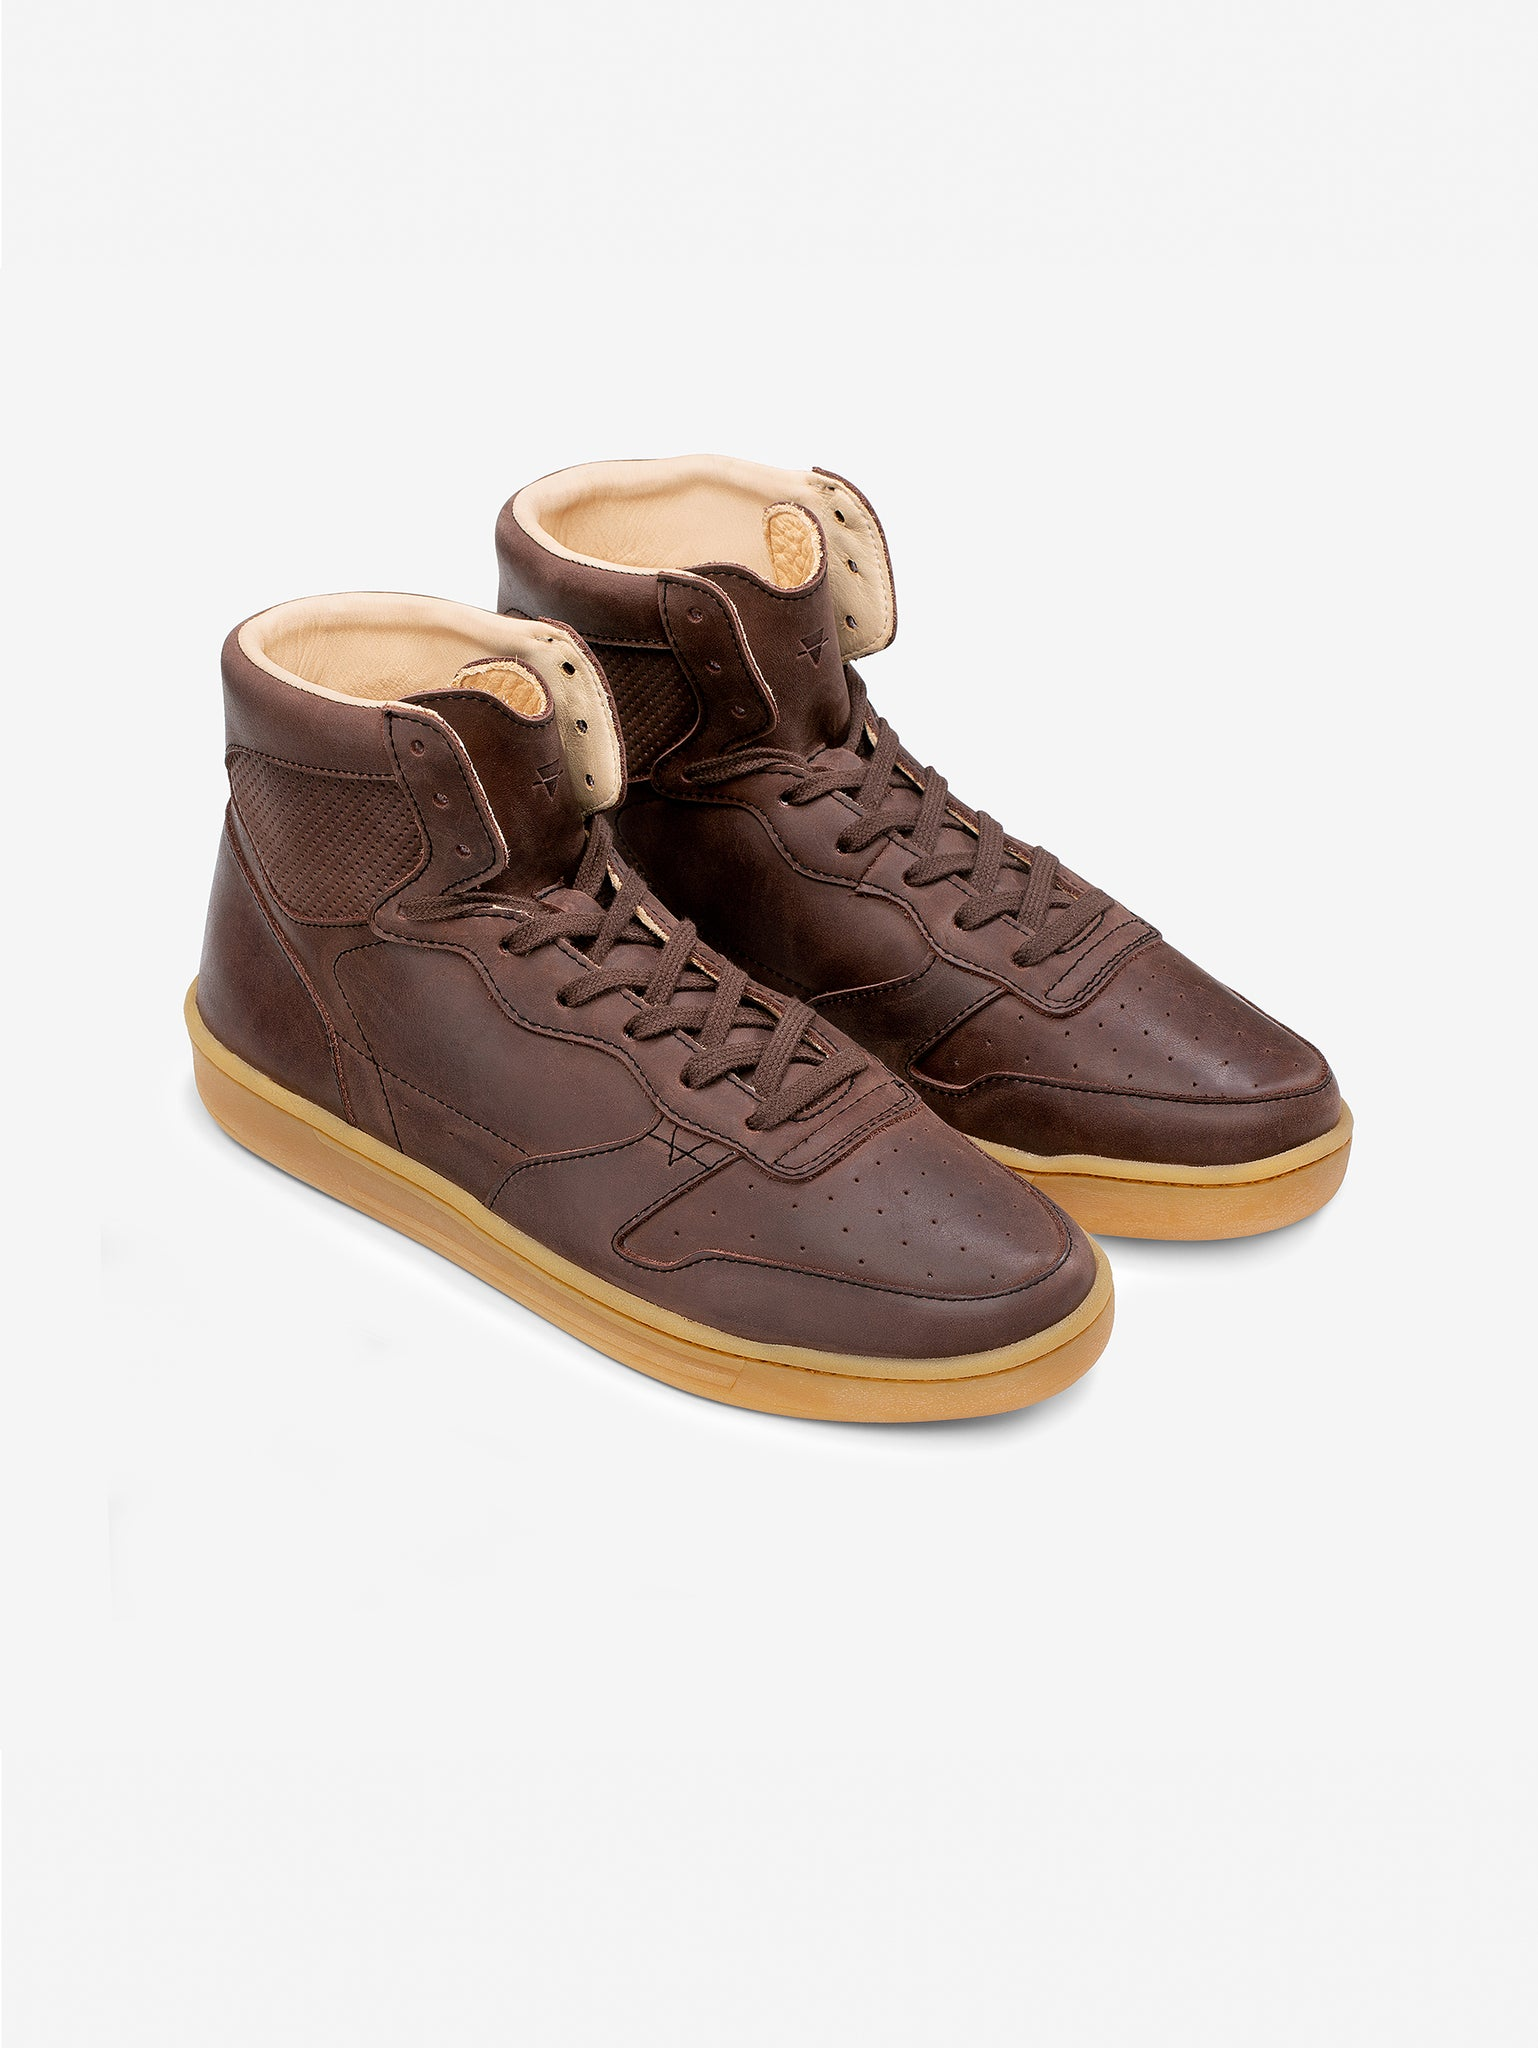 1978  - Chestnut Brown Leather High Top